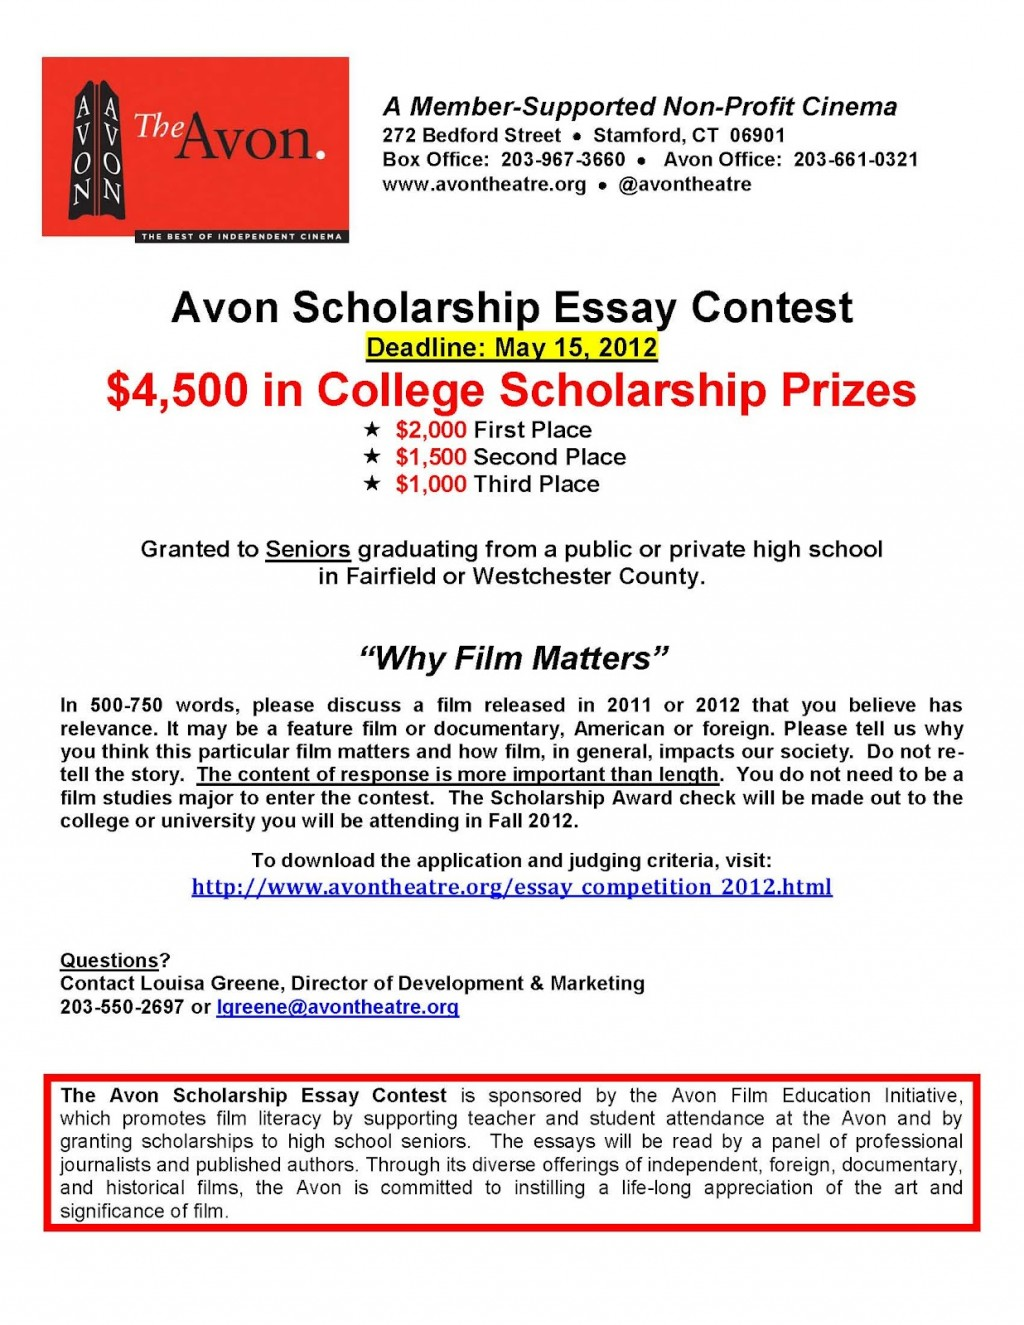 002 No Essay Collegeip Prowler Freeips For High School Seniors Avonscholarshipessaycontest2012 In Texas California Class Of Short Example Wondrous Scholarship College Scholarships 2018 2019 Free Large